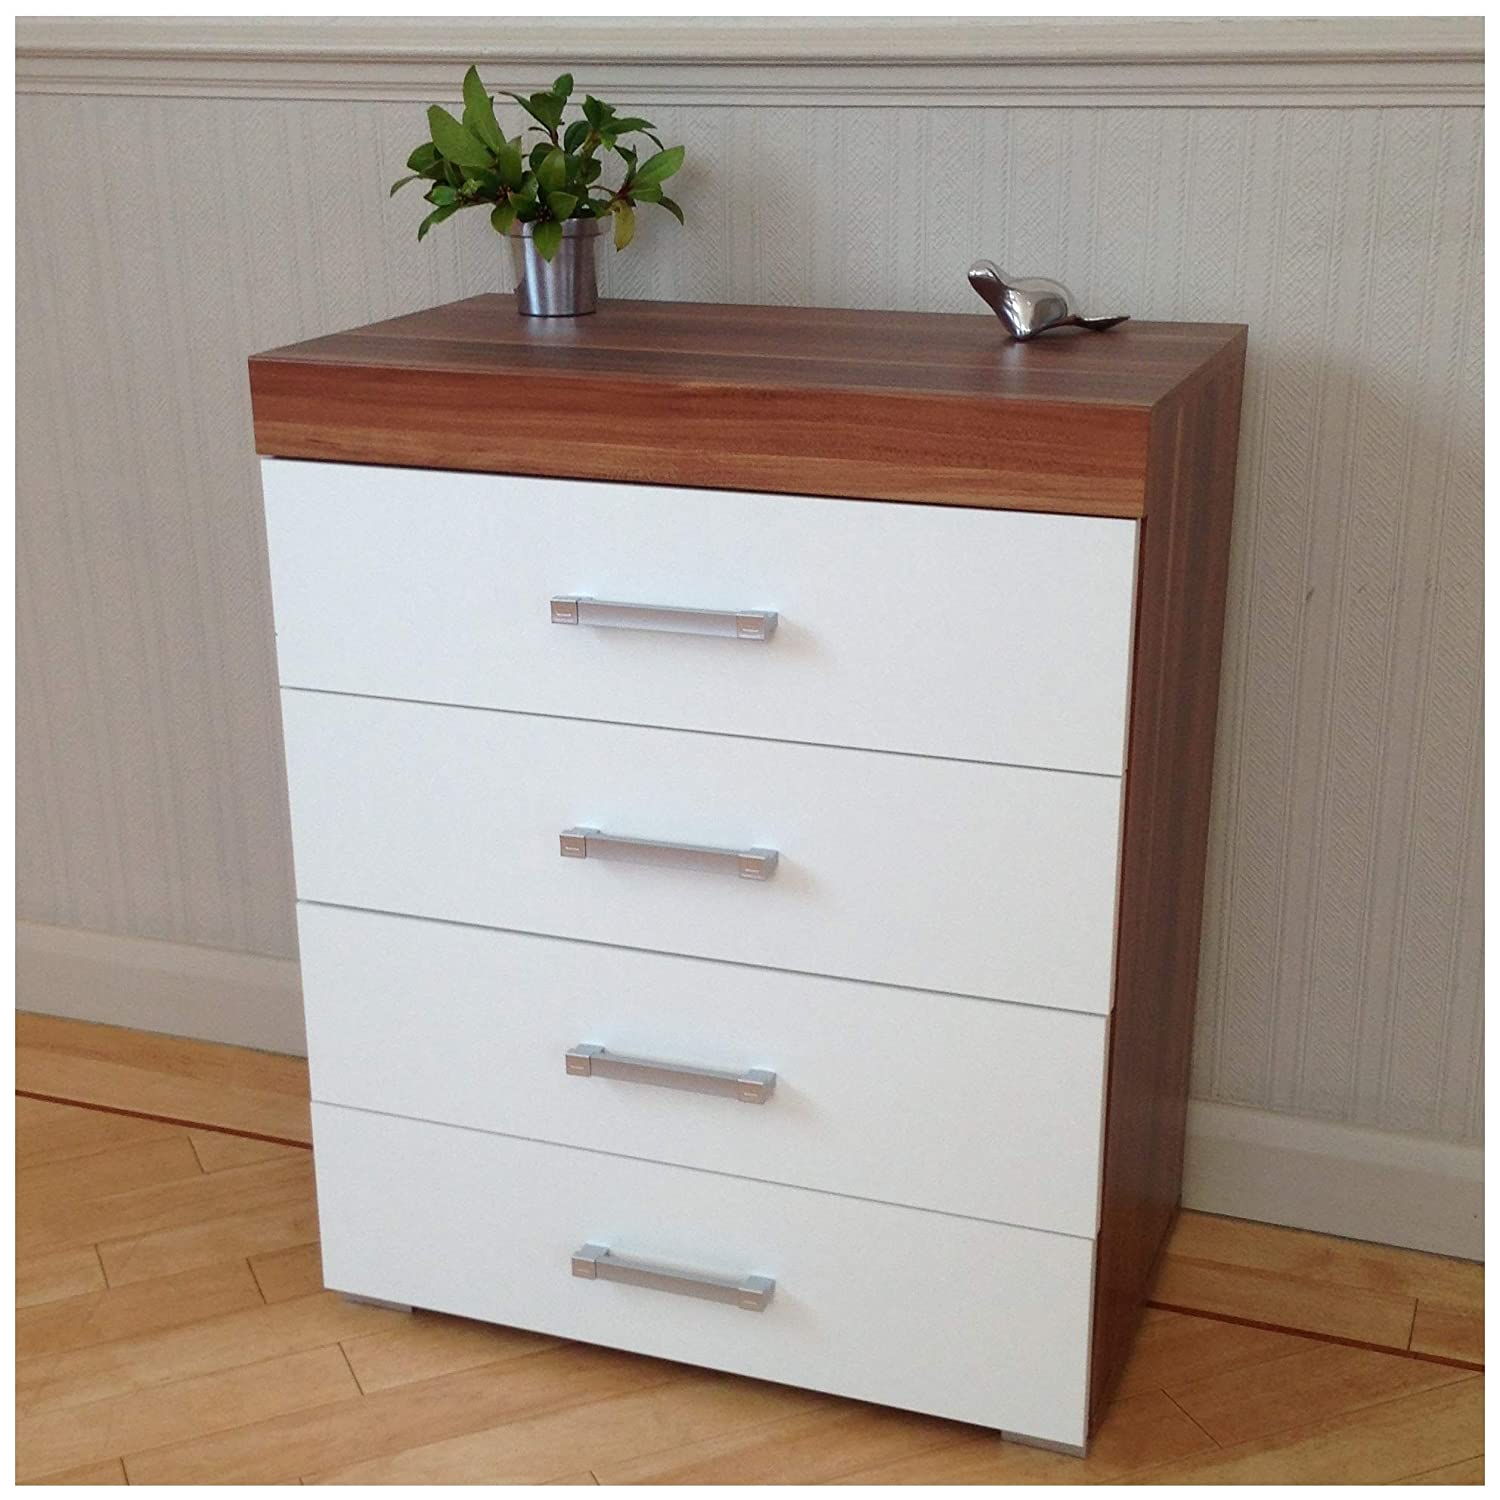 DRP Trading White & Walnut Chest of Drawer - 4 Draw - Bedroom Furniture